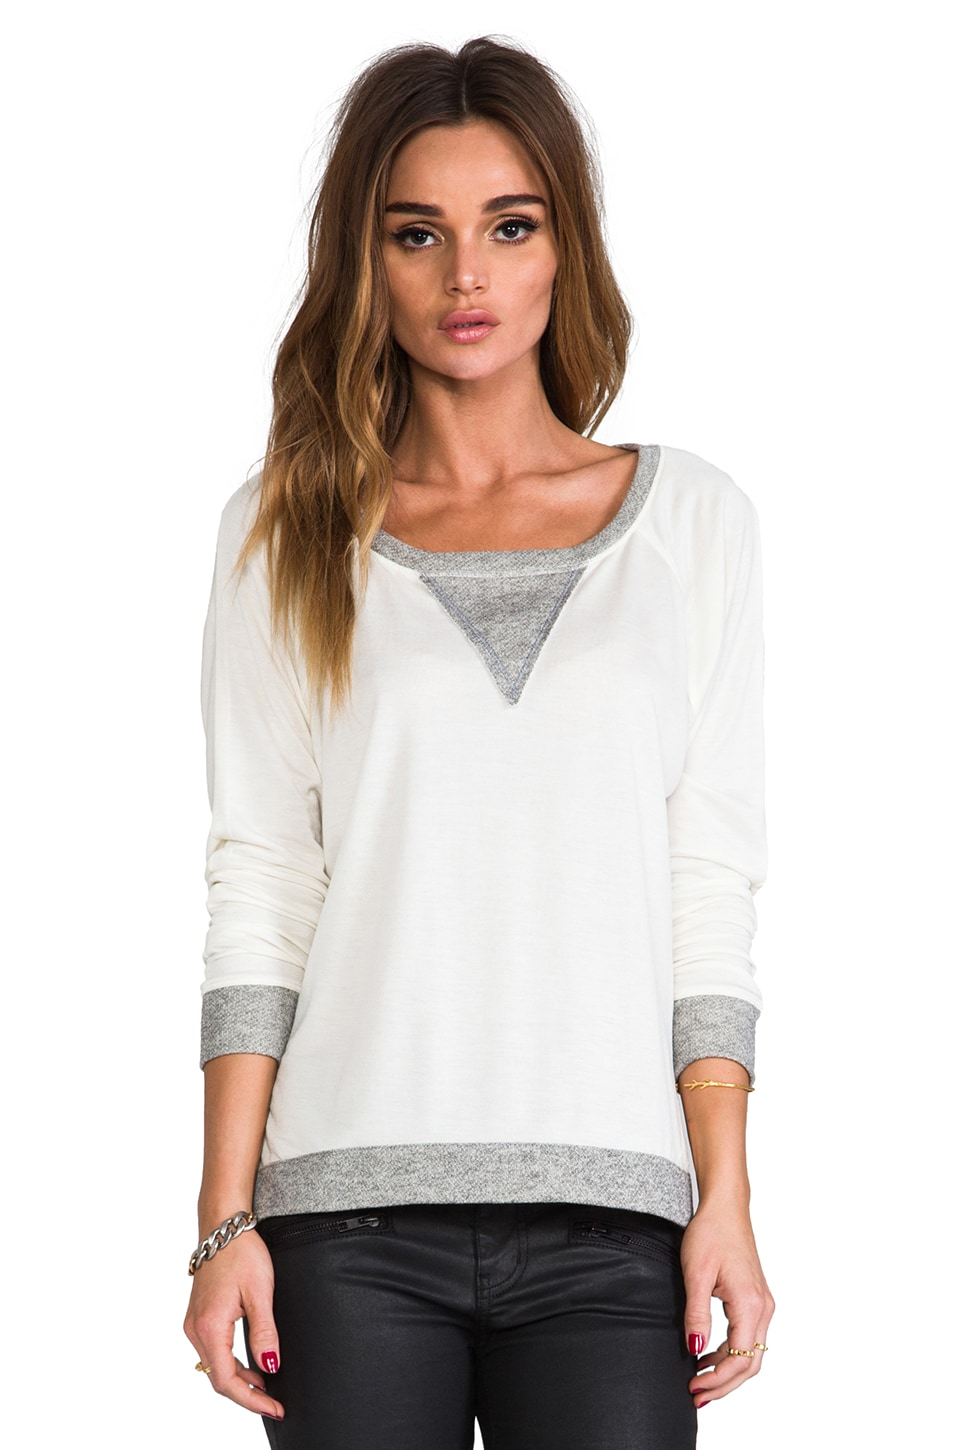 WOODLEIGH Camilla Top in White